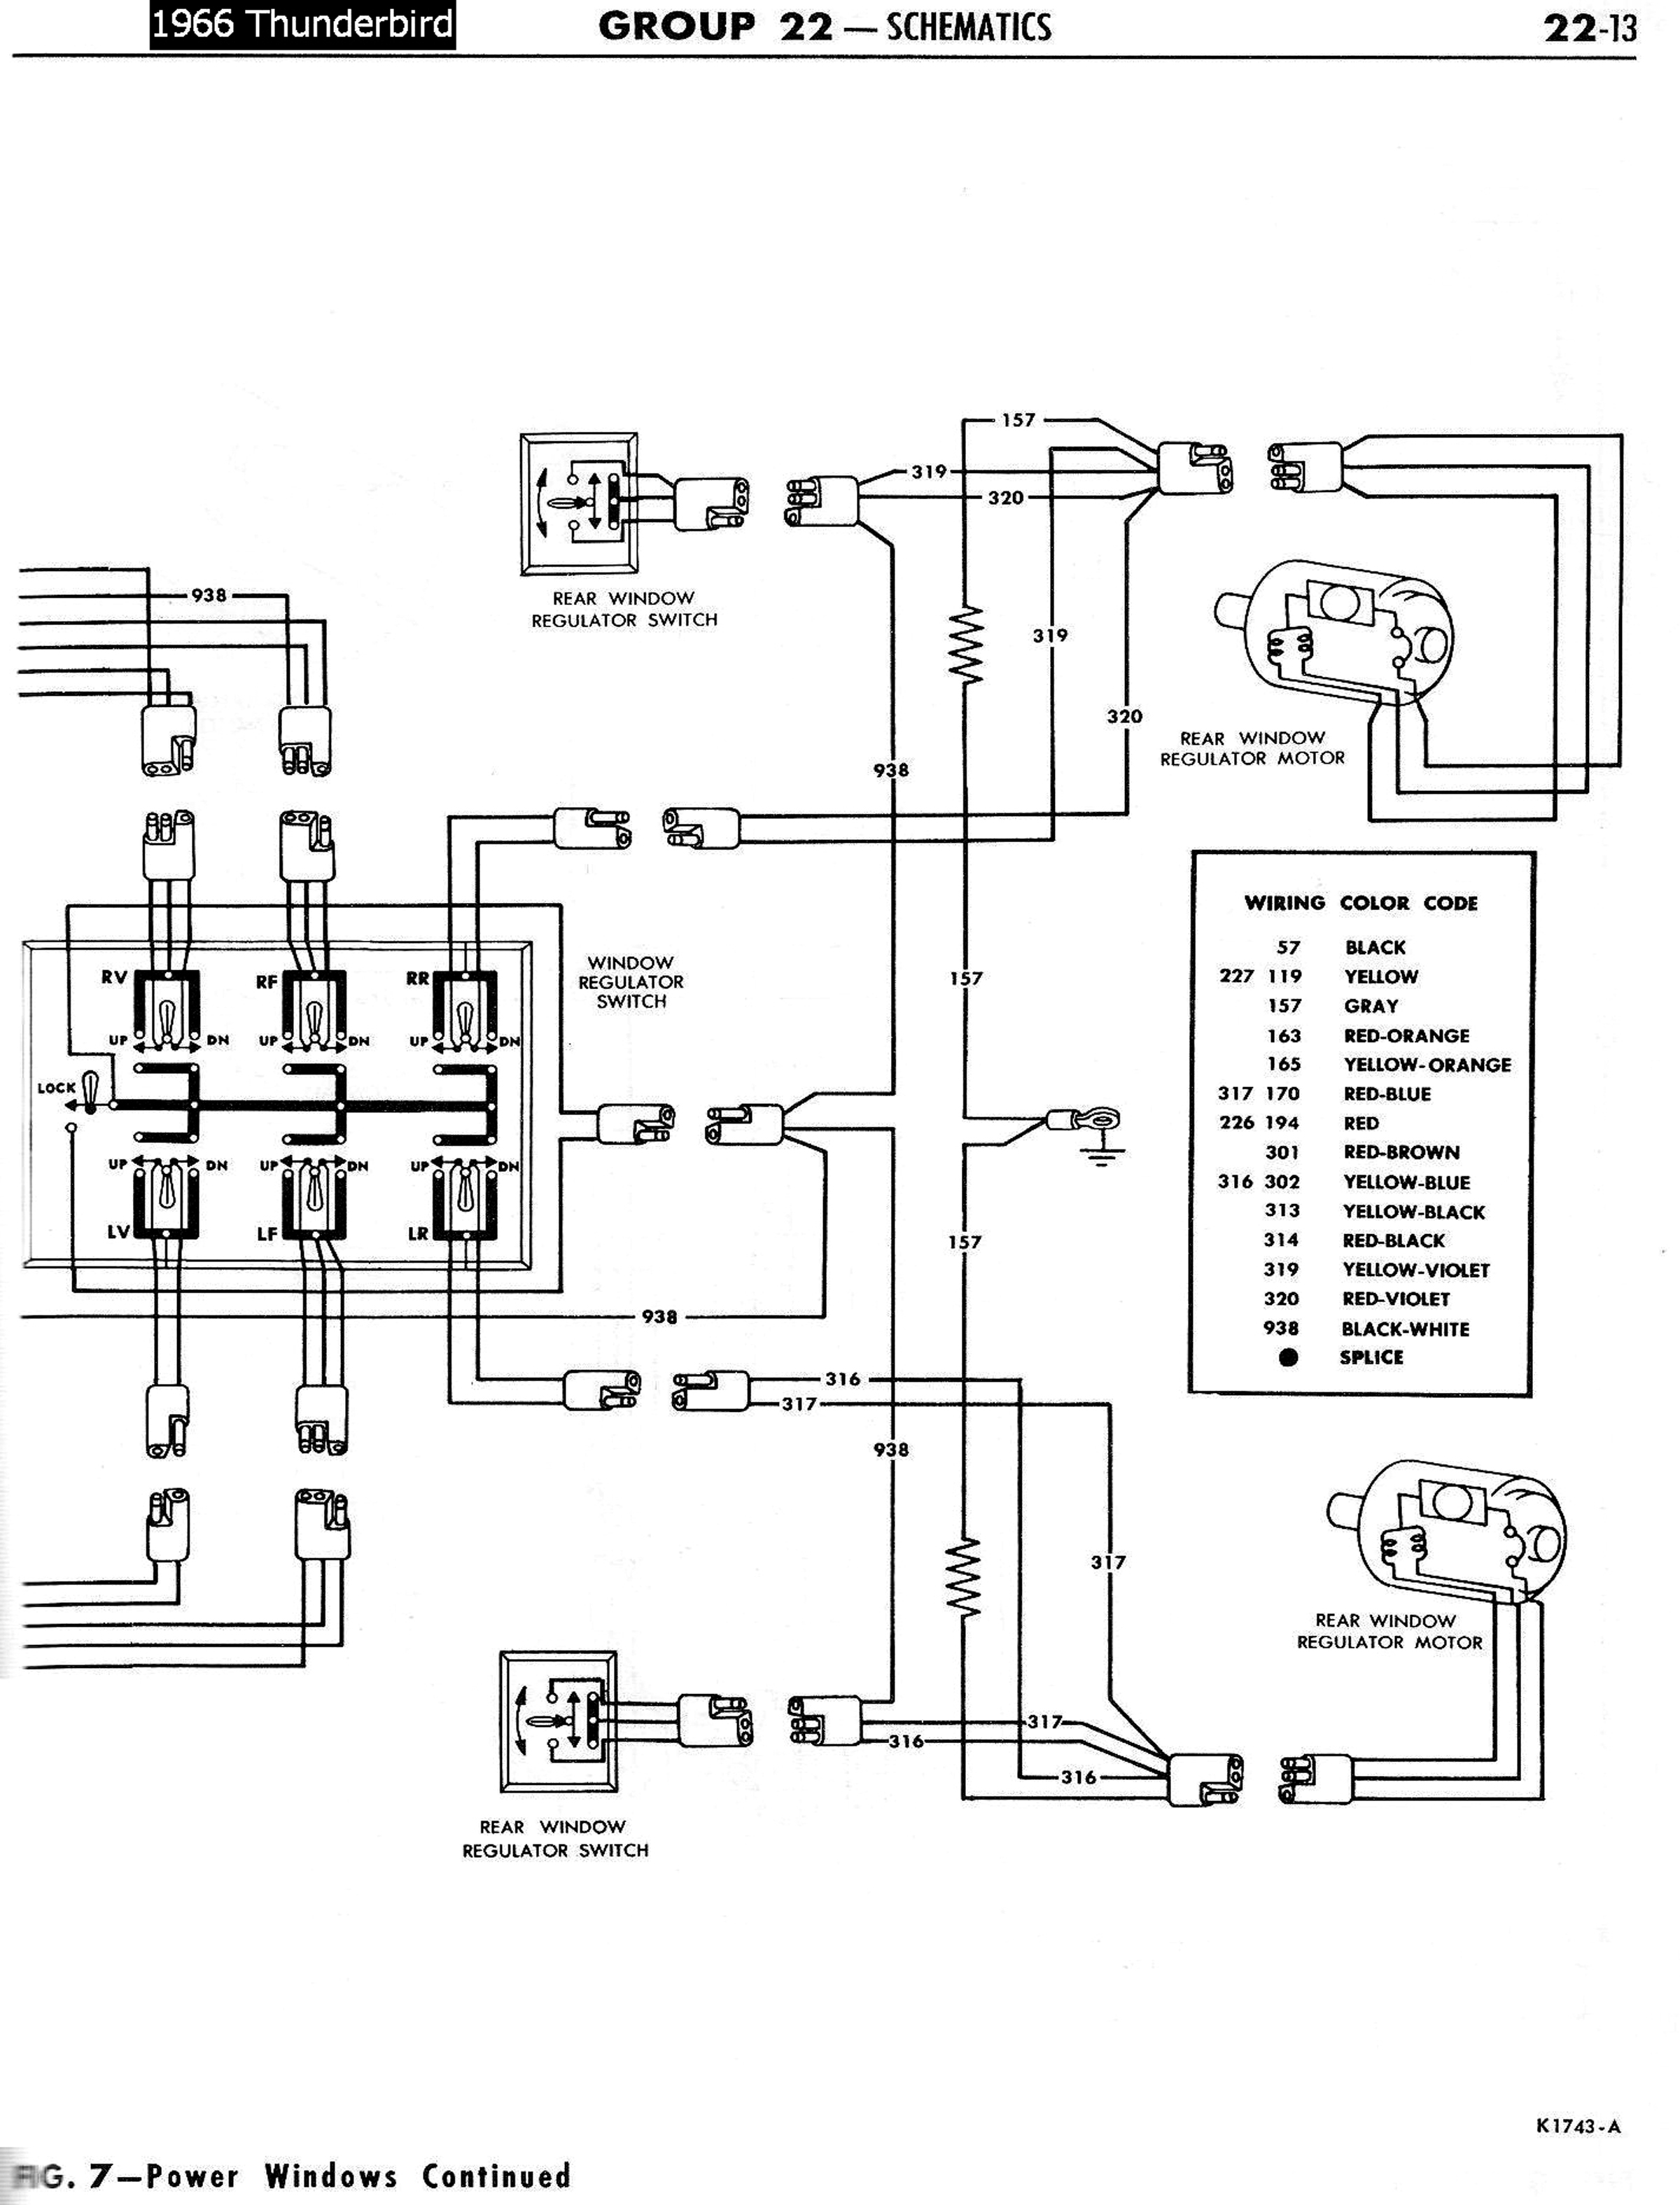 Ford Falcon Wiring Diagram Furthermore 1968 Thunderbird Wiring Diagram